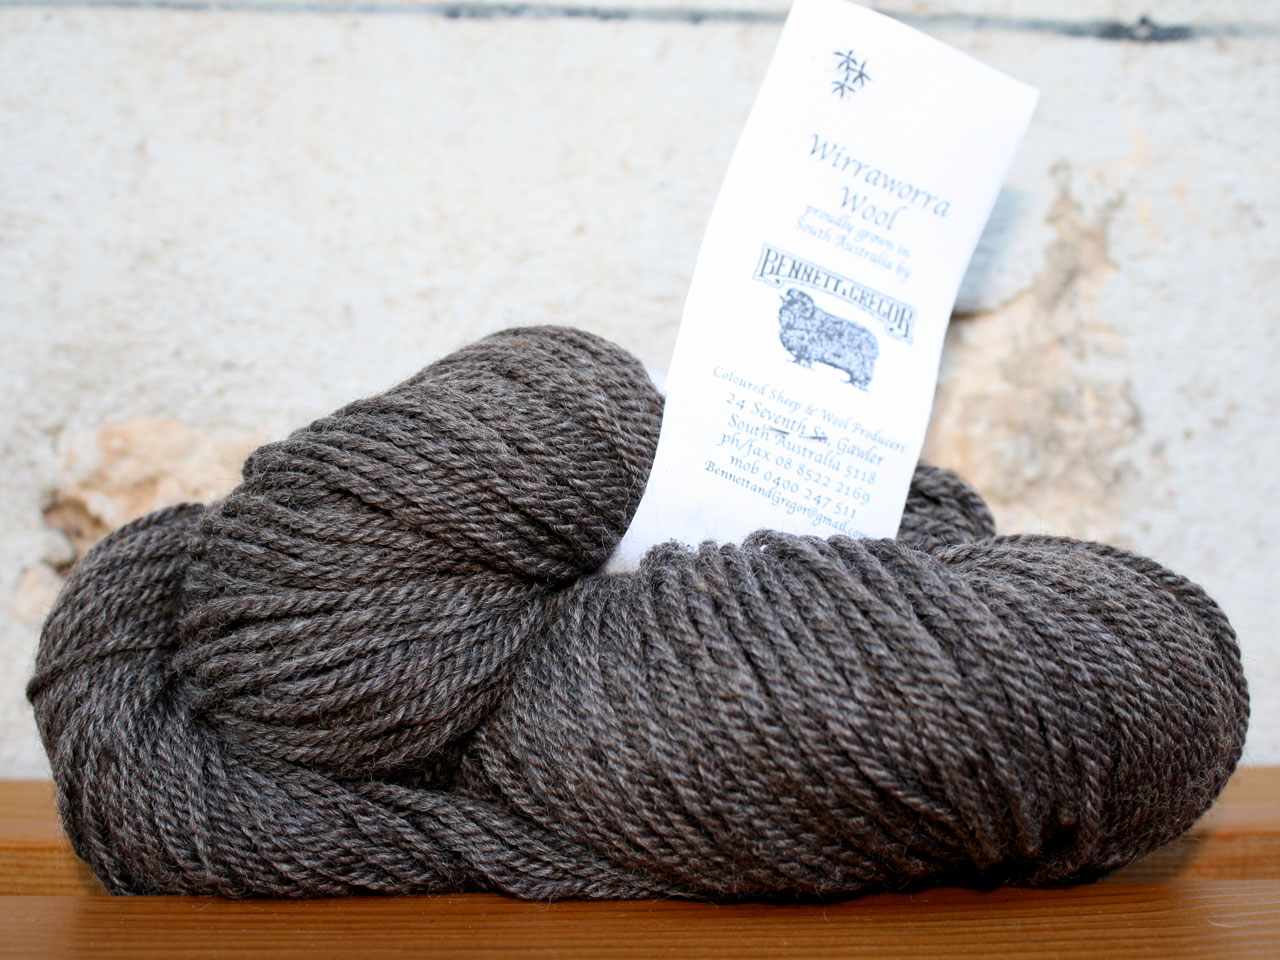 Wattlebark [Dark Grey/Brown] - Currently Unavailable